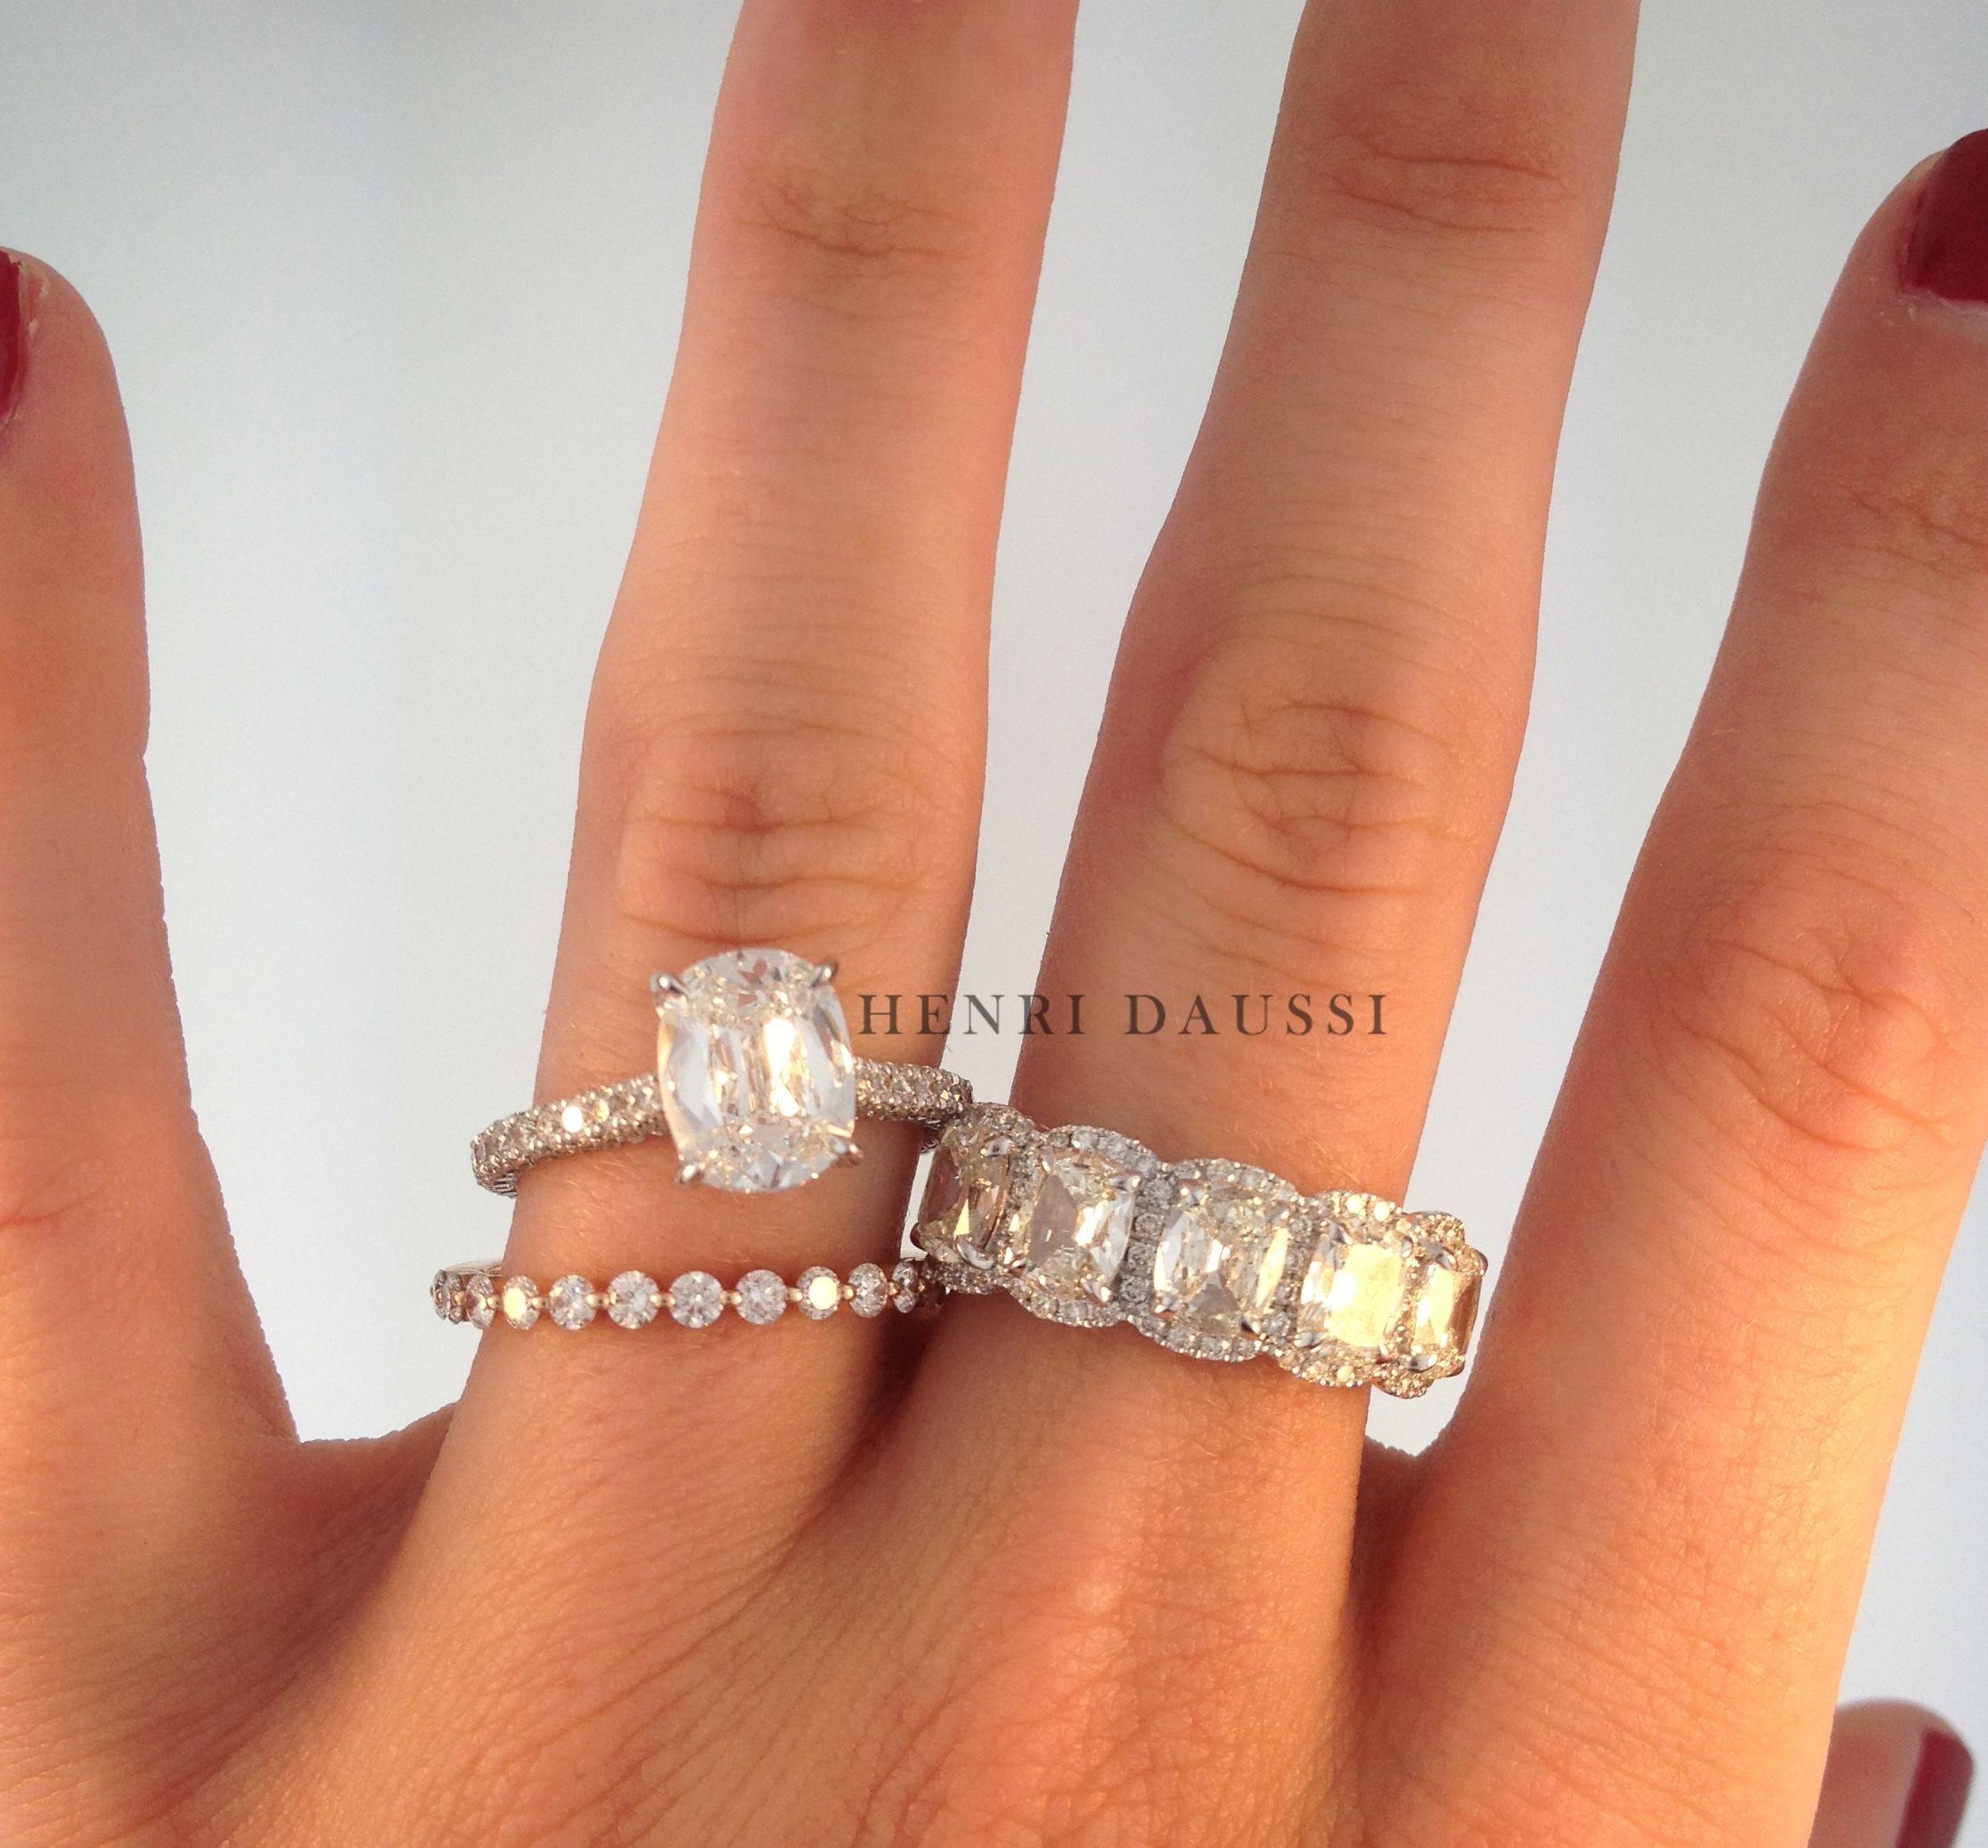 Solitaire engagement ring rose gold diamond band and 5 stone